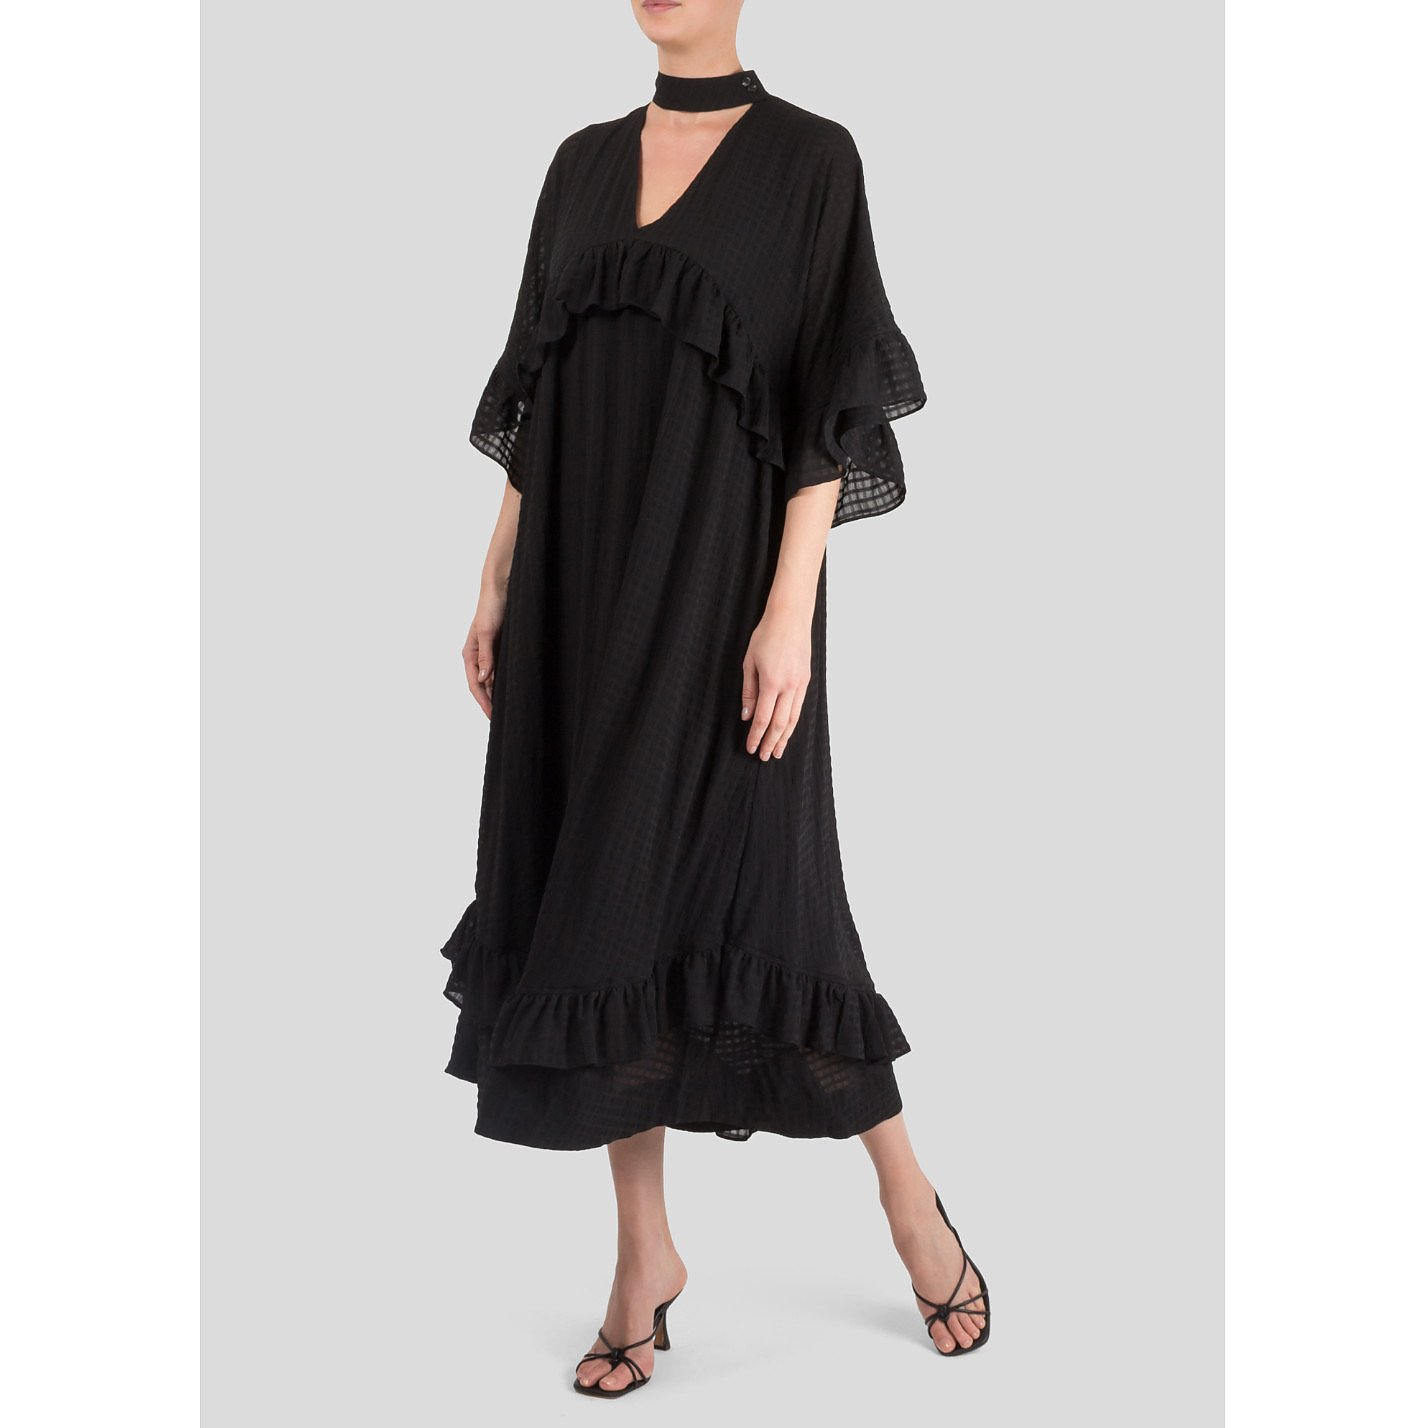 Rent Or Buy Ganni Ruffled Seersucker Midi Dress From Mywardrobehq Com